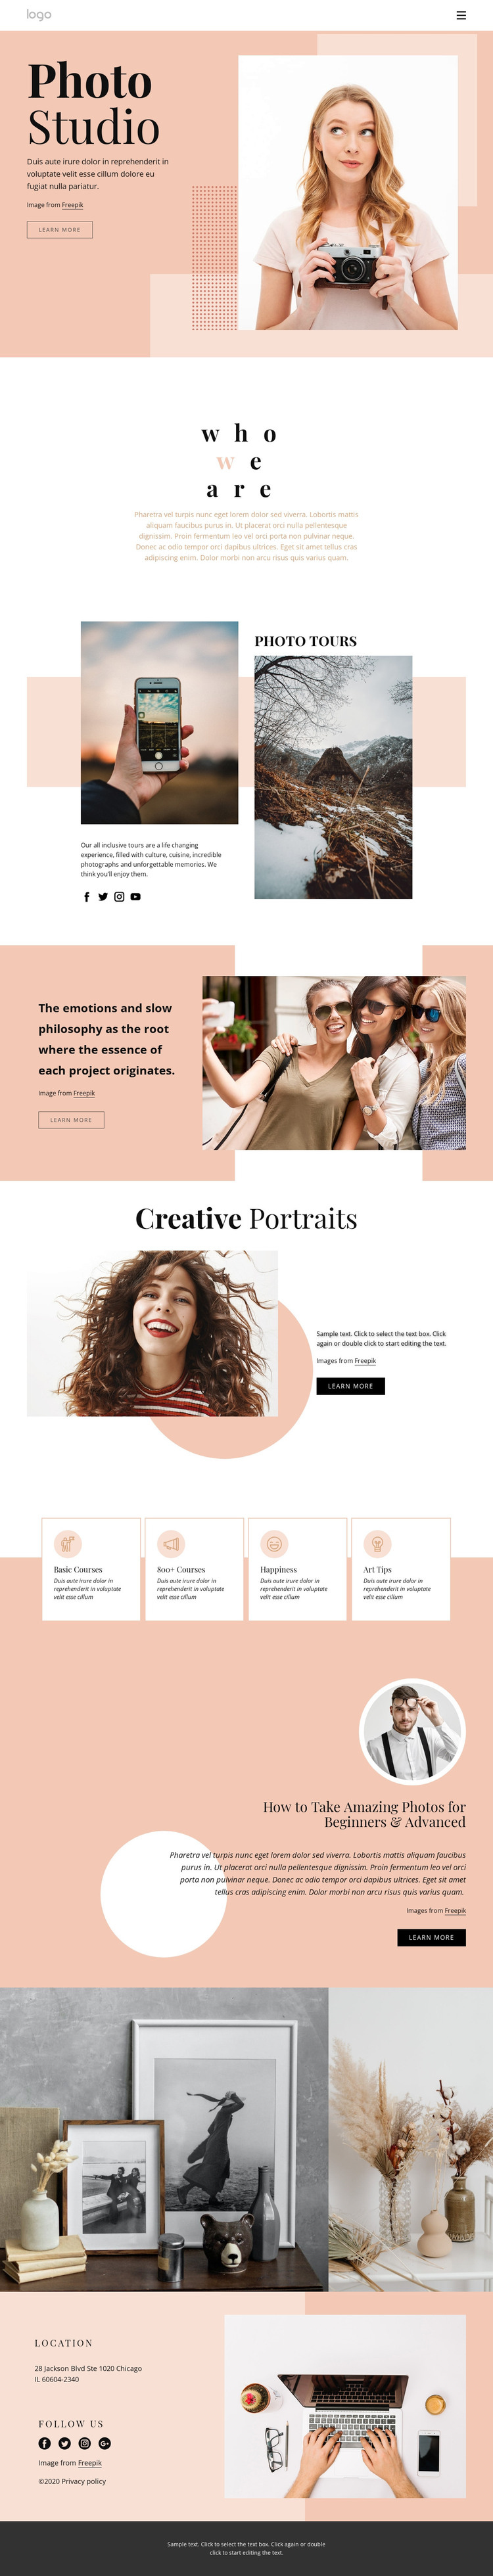 Photography courses WordPress Theme